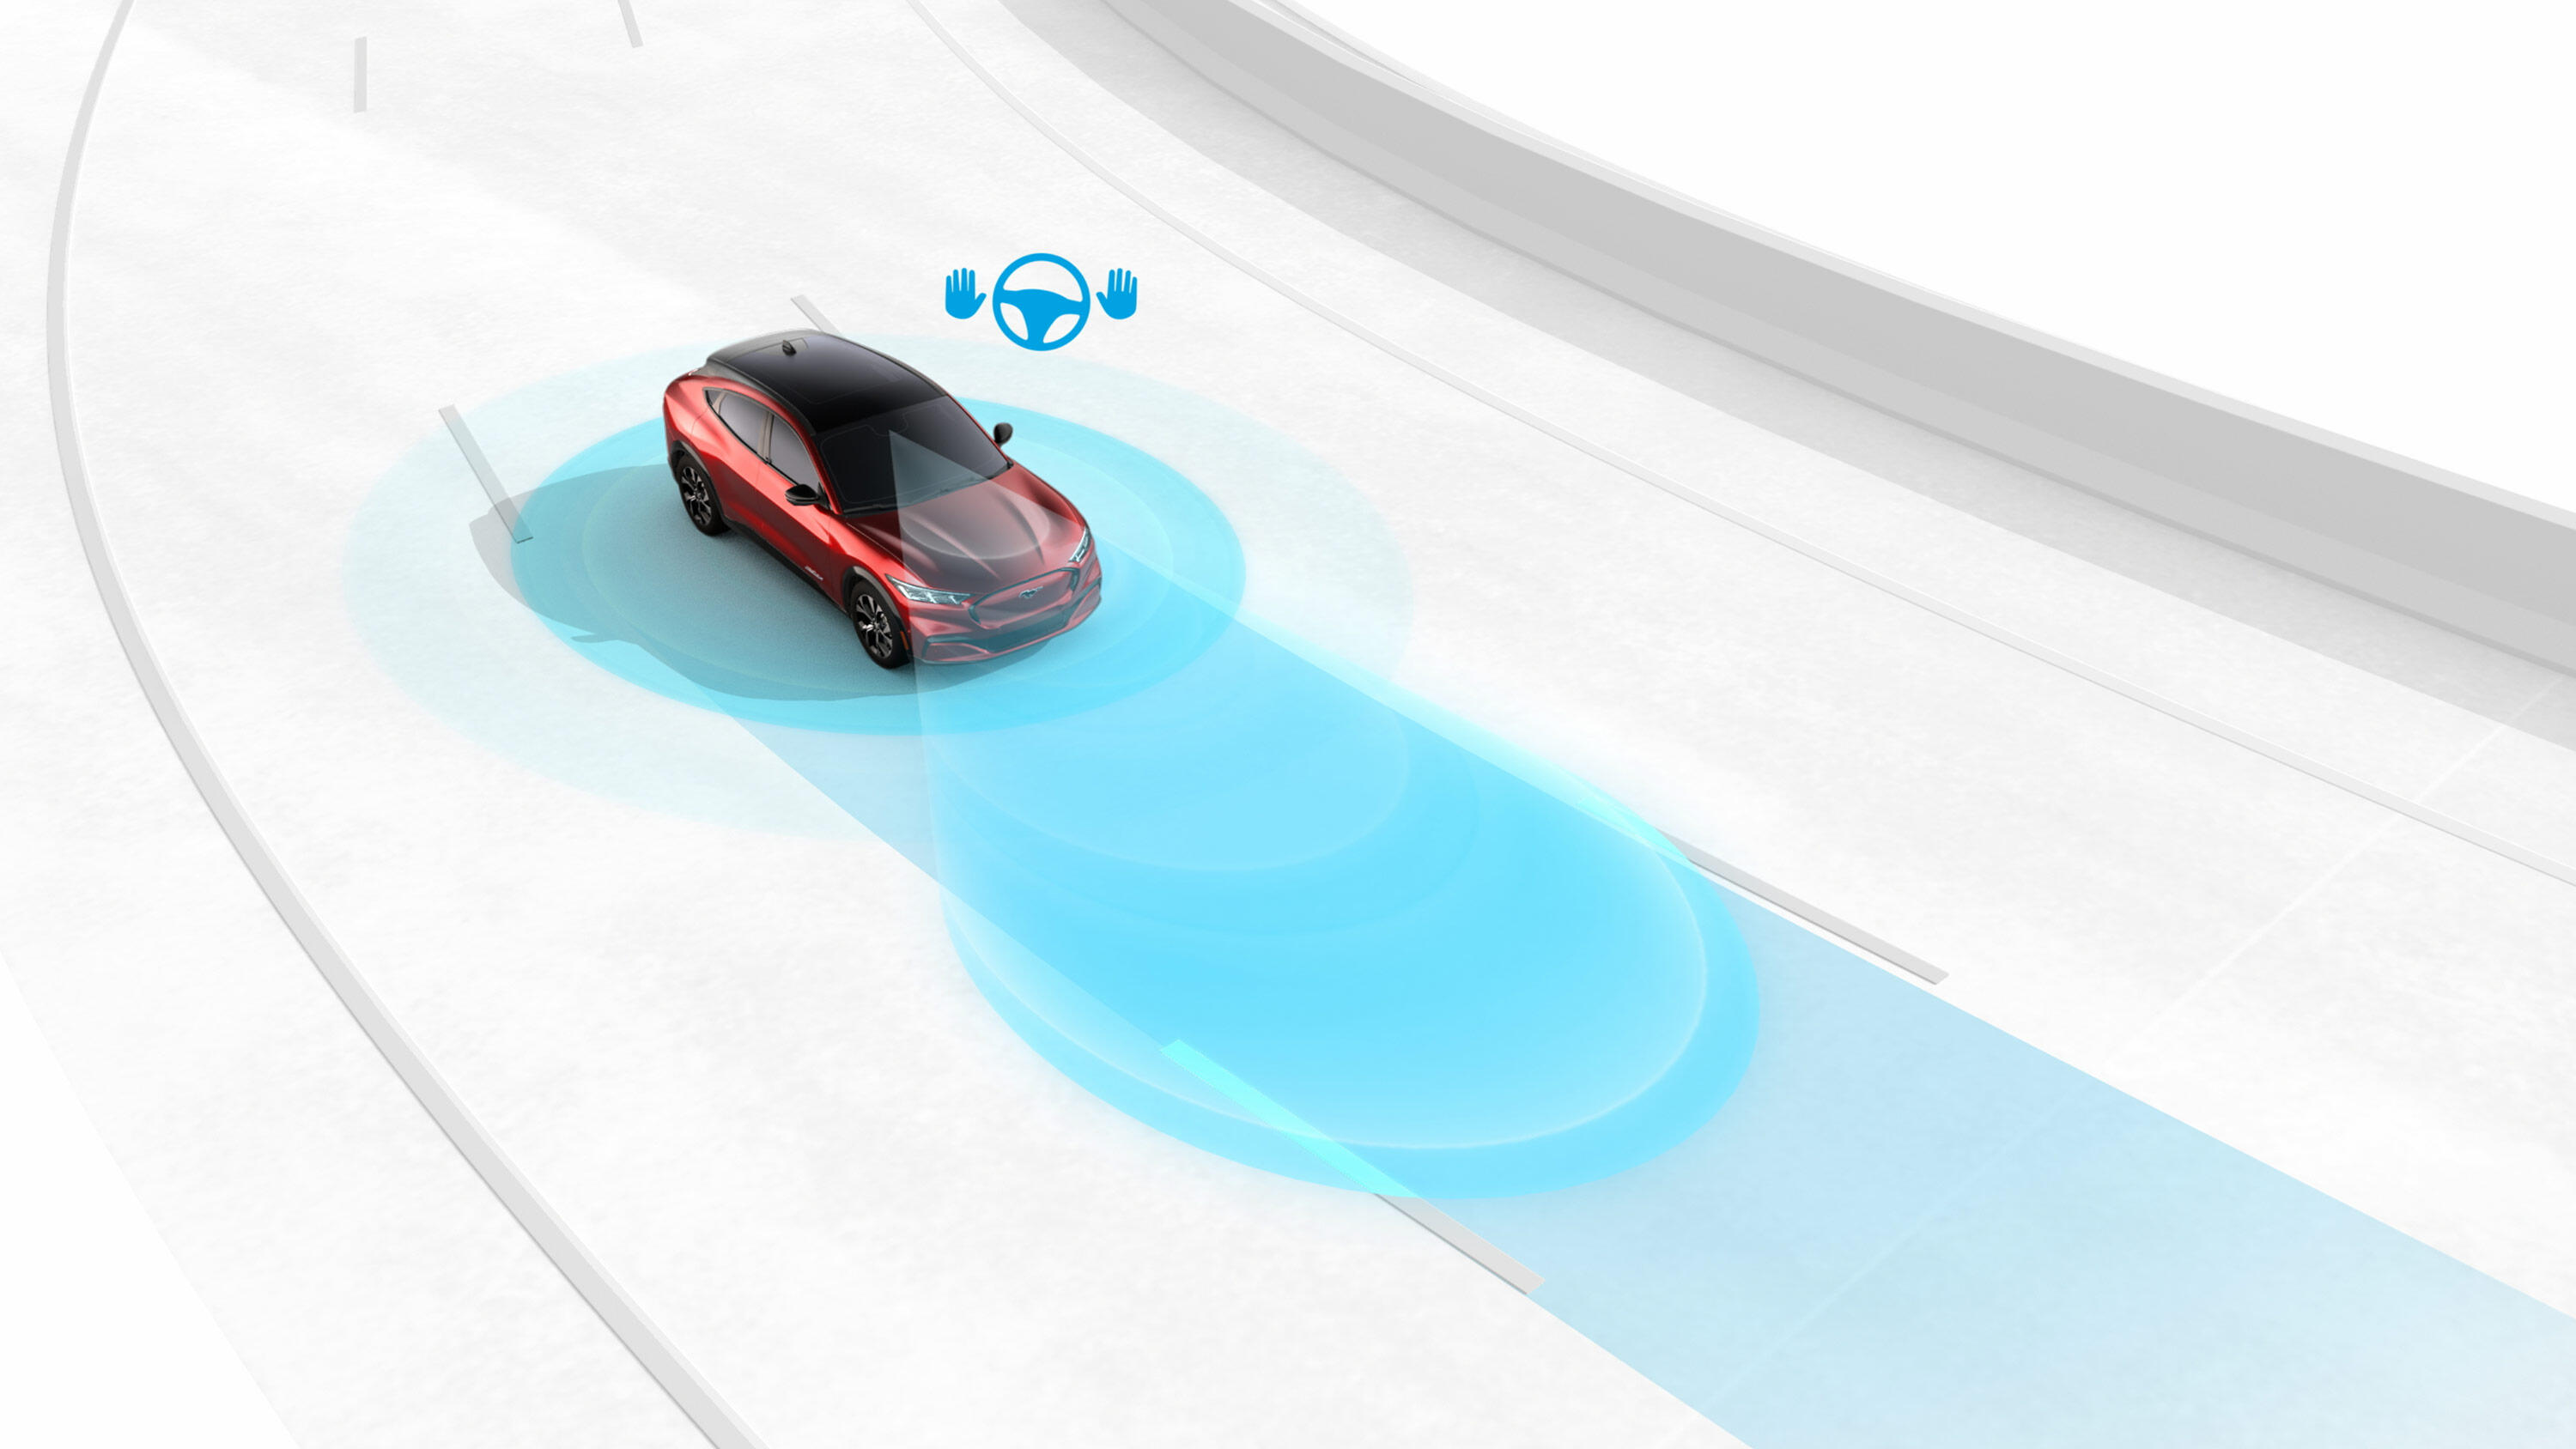 2021 Ford BlueCruise Hands Free Driving